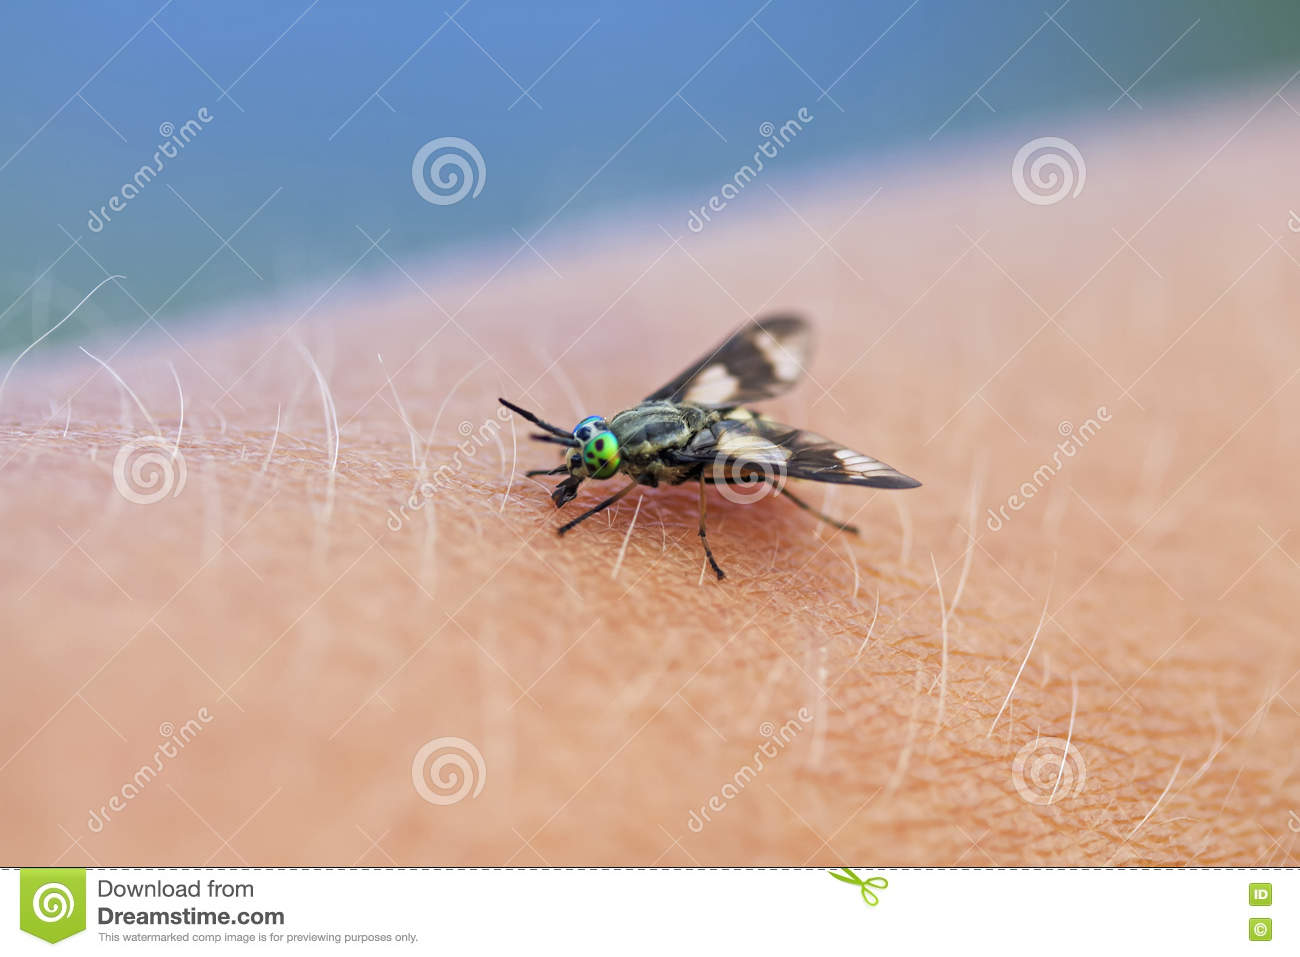 Gadfly - an insect attacking animals and humans. What to do when biting gadfly 59